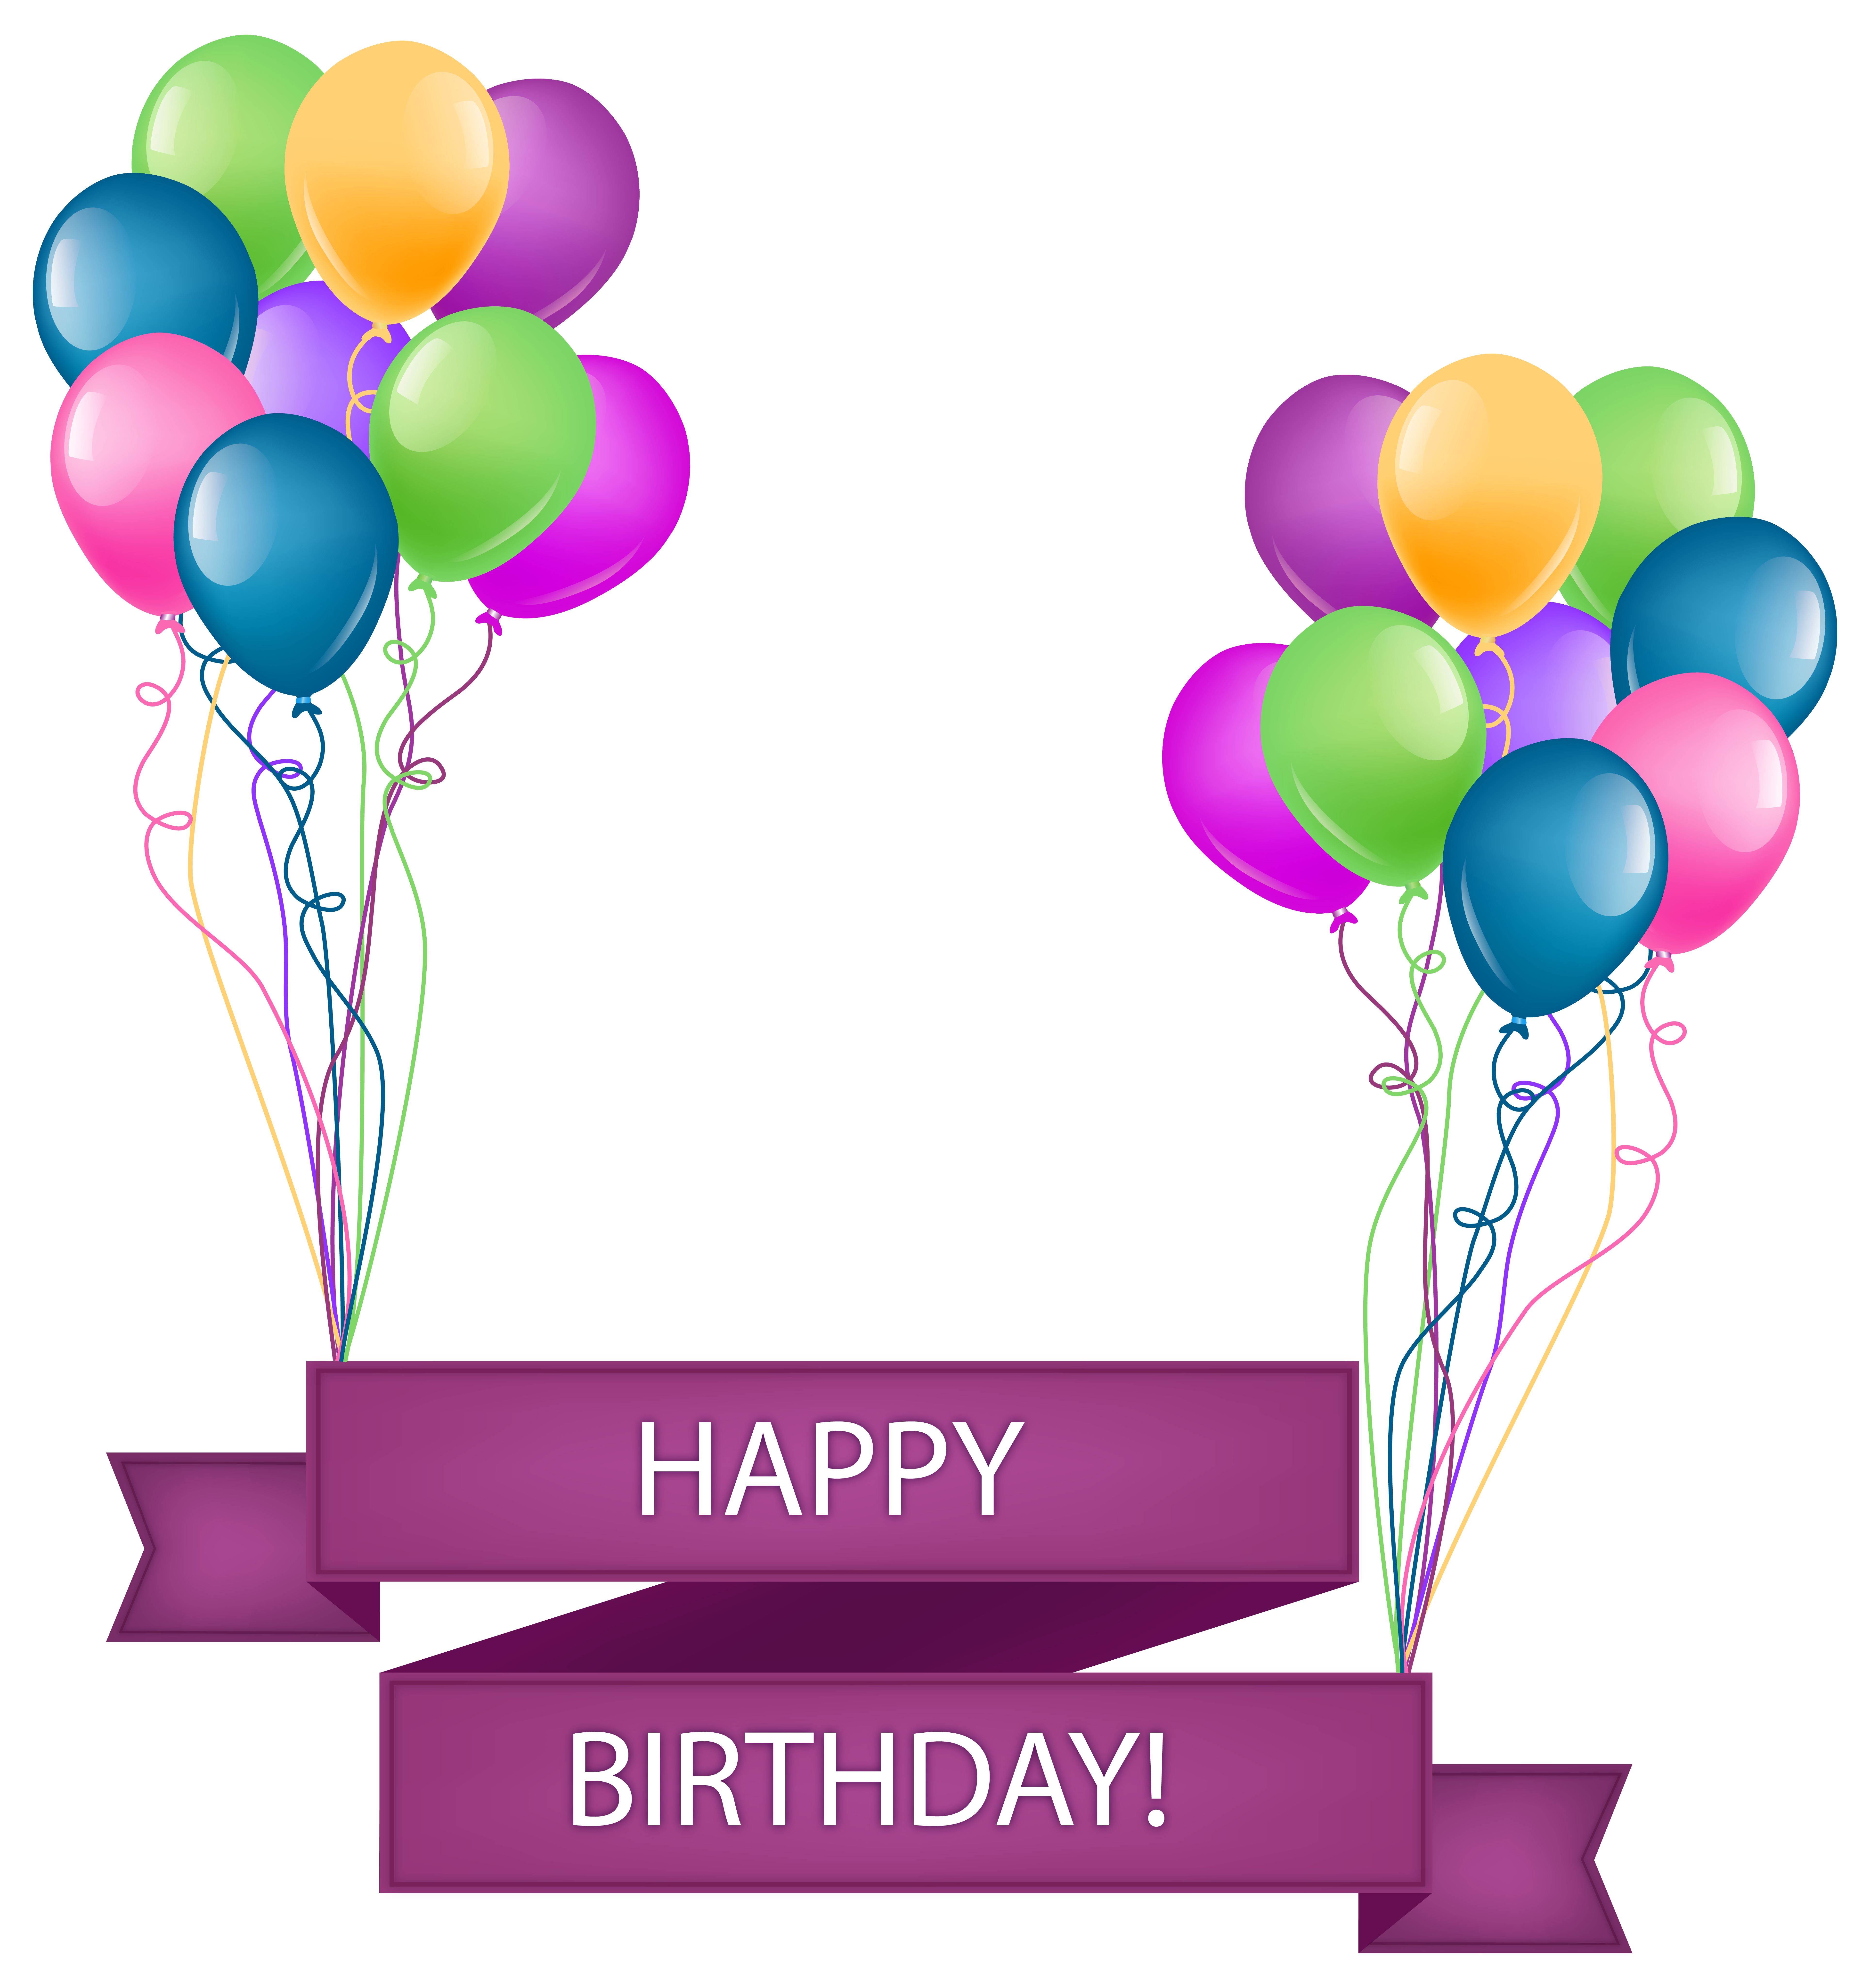 Happy Birthday Banner with Balloons Transparent PNG Clip Art Image.